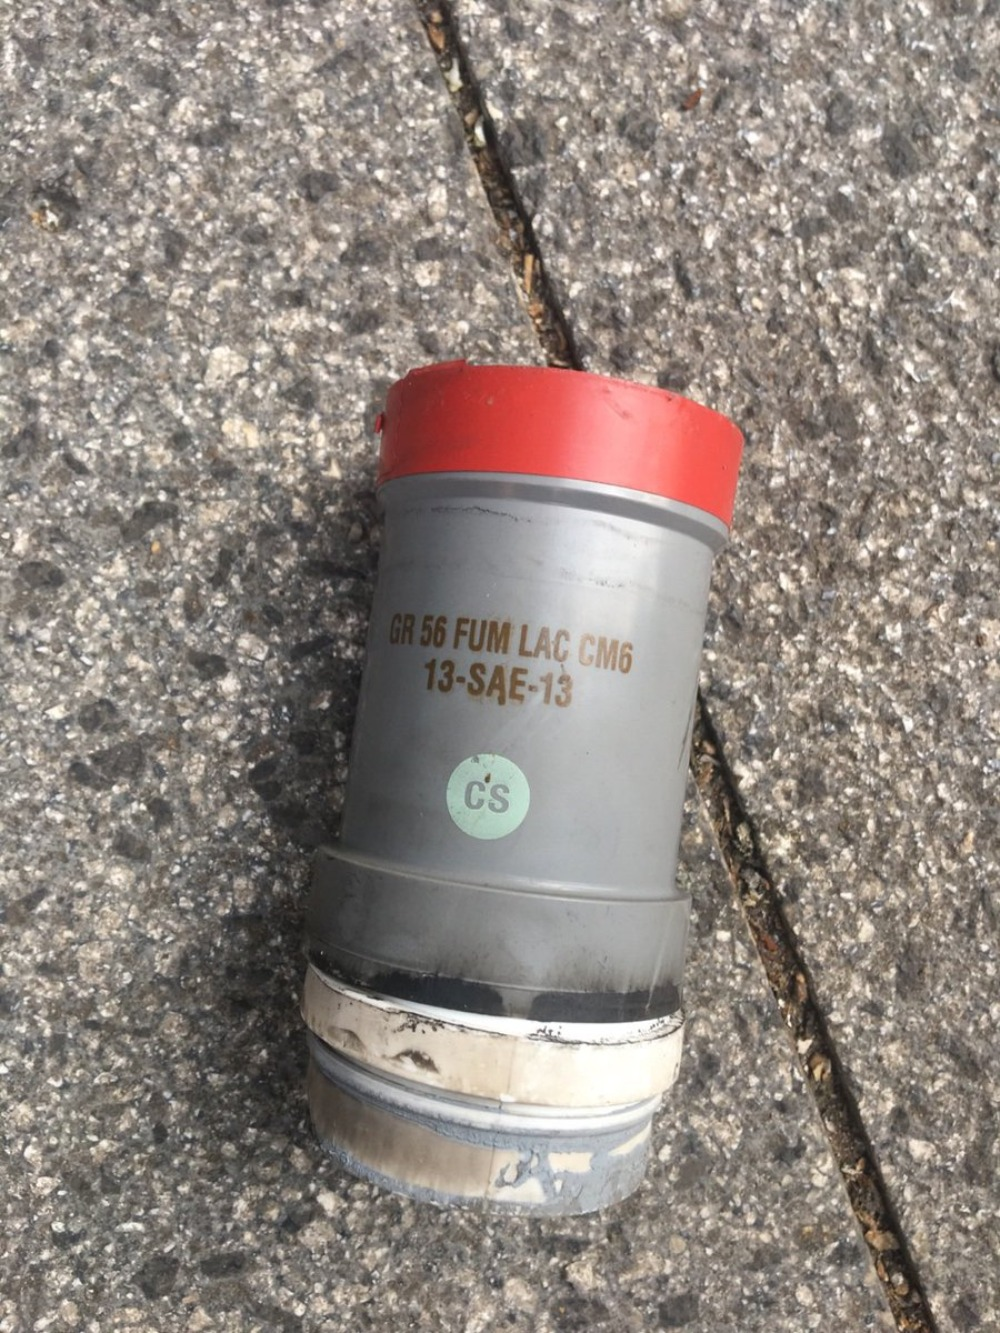 A CM6 tear gas grenade left over after the 18 October incident at Riad al-Solh Square in downtown Beirut (MEE/Kareem Chehayeb)